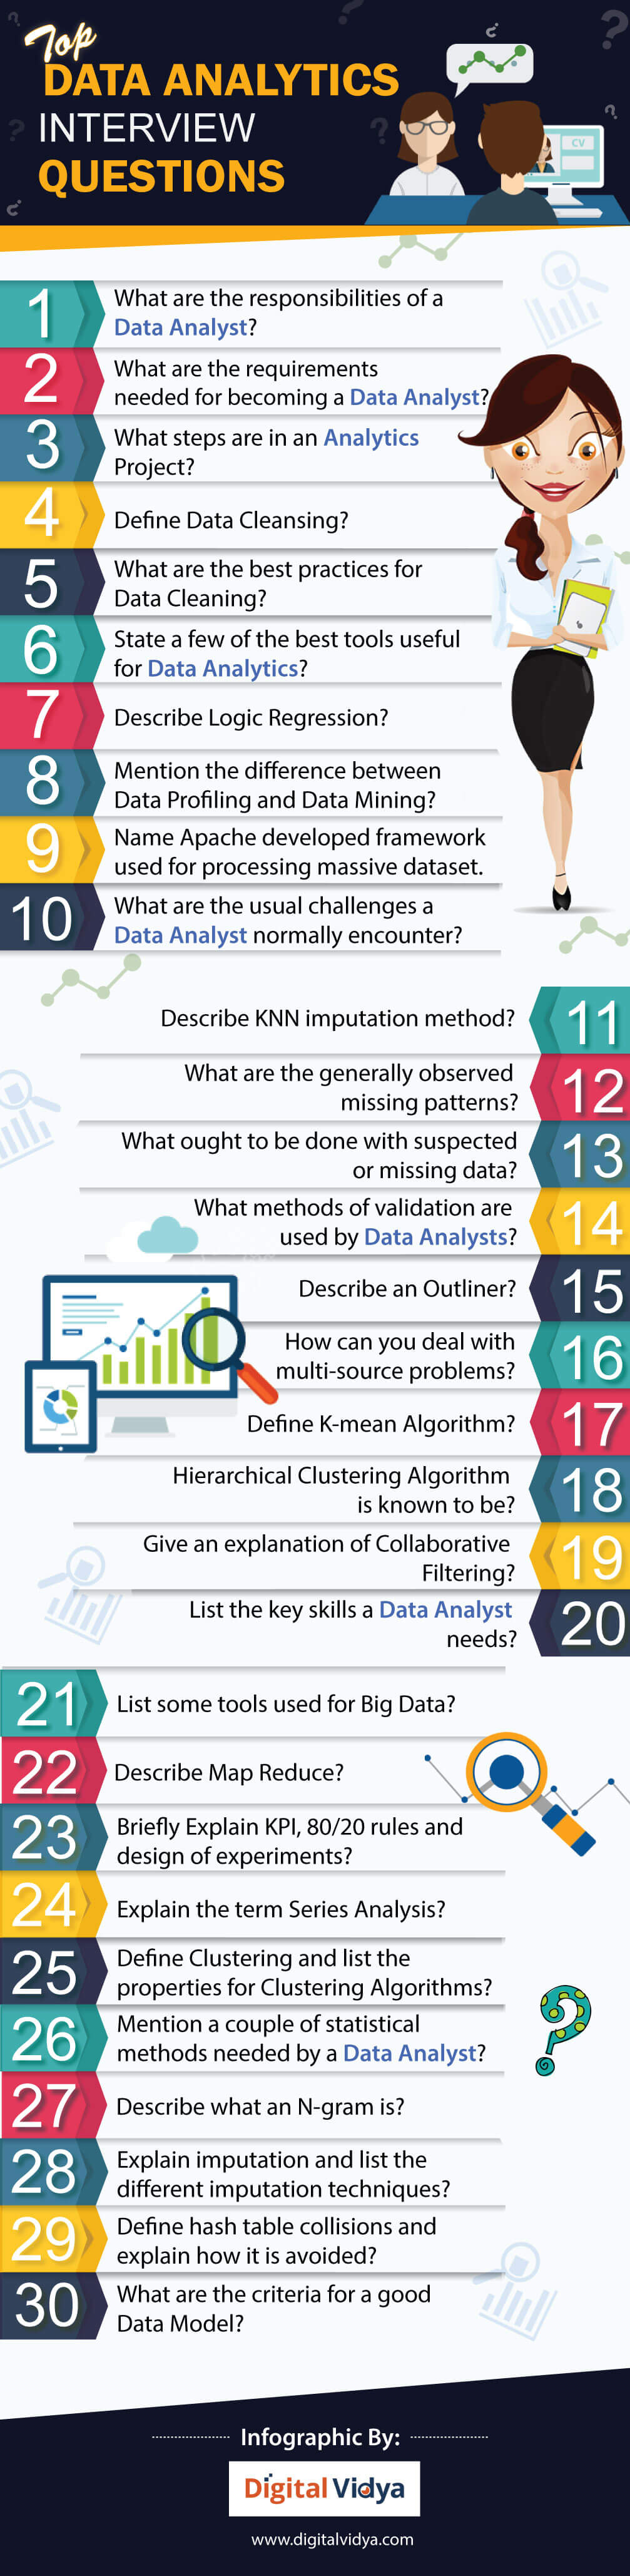 Top 30 Data Analytics Interview Questions & Answers